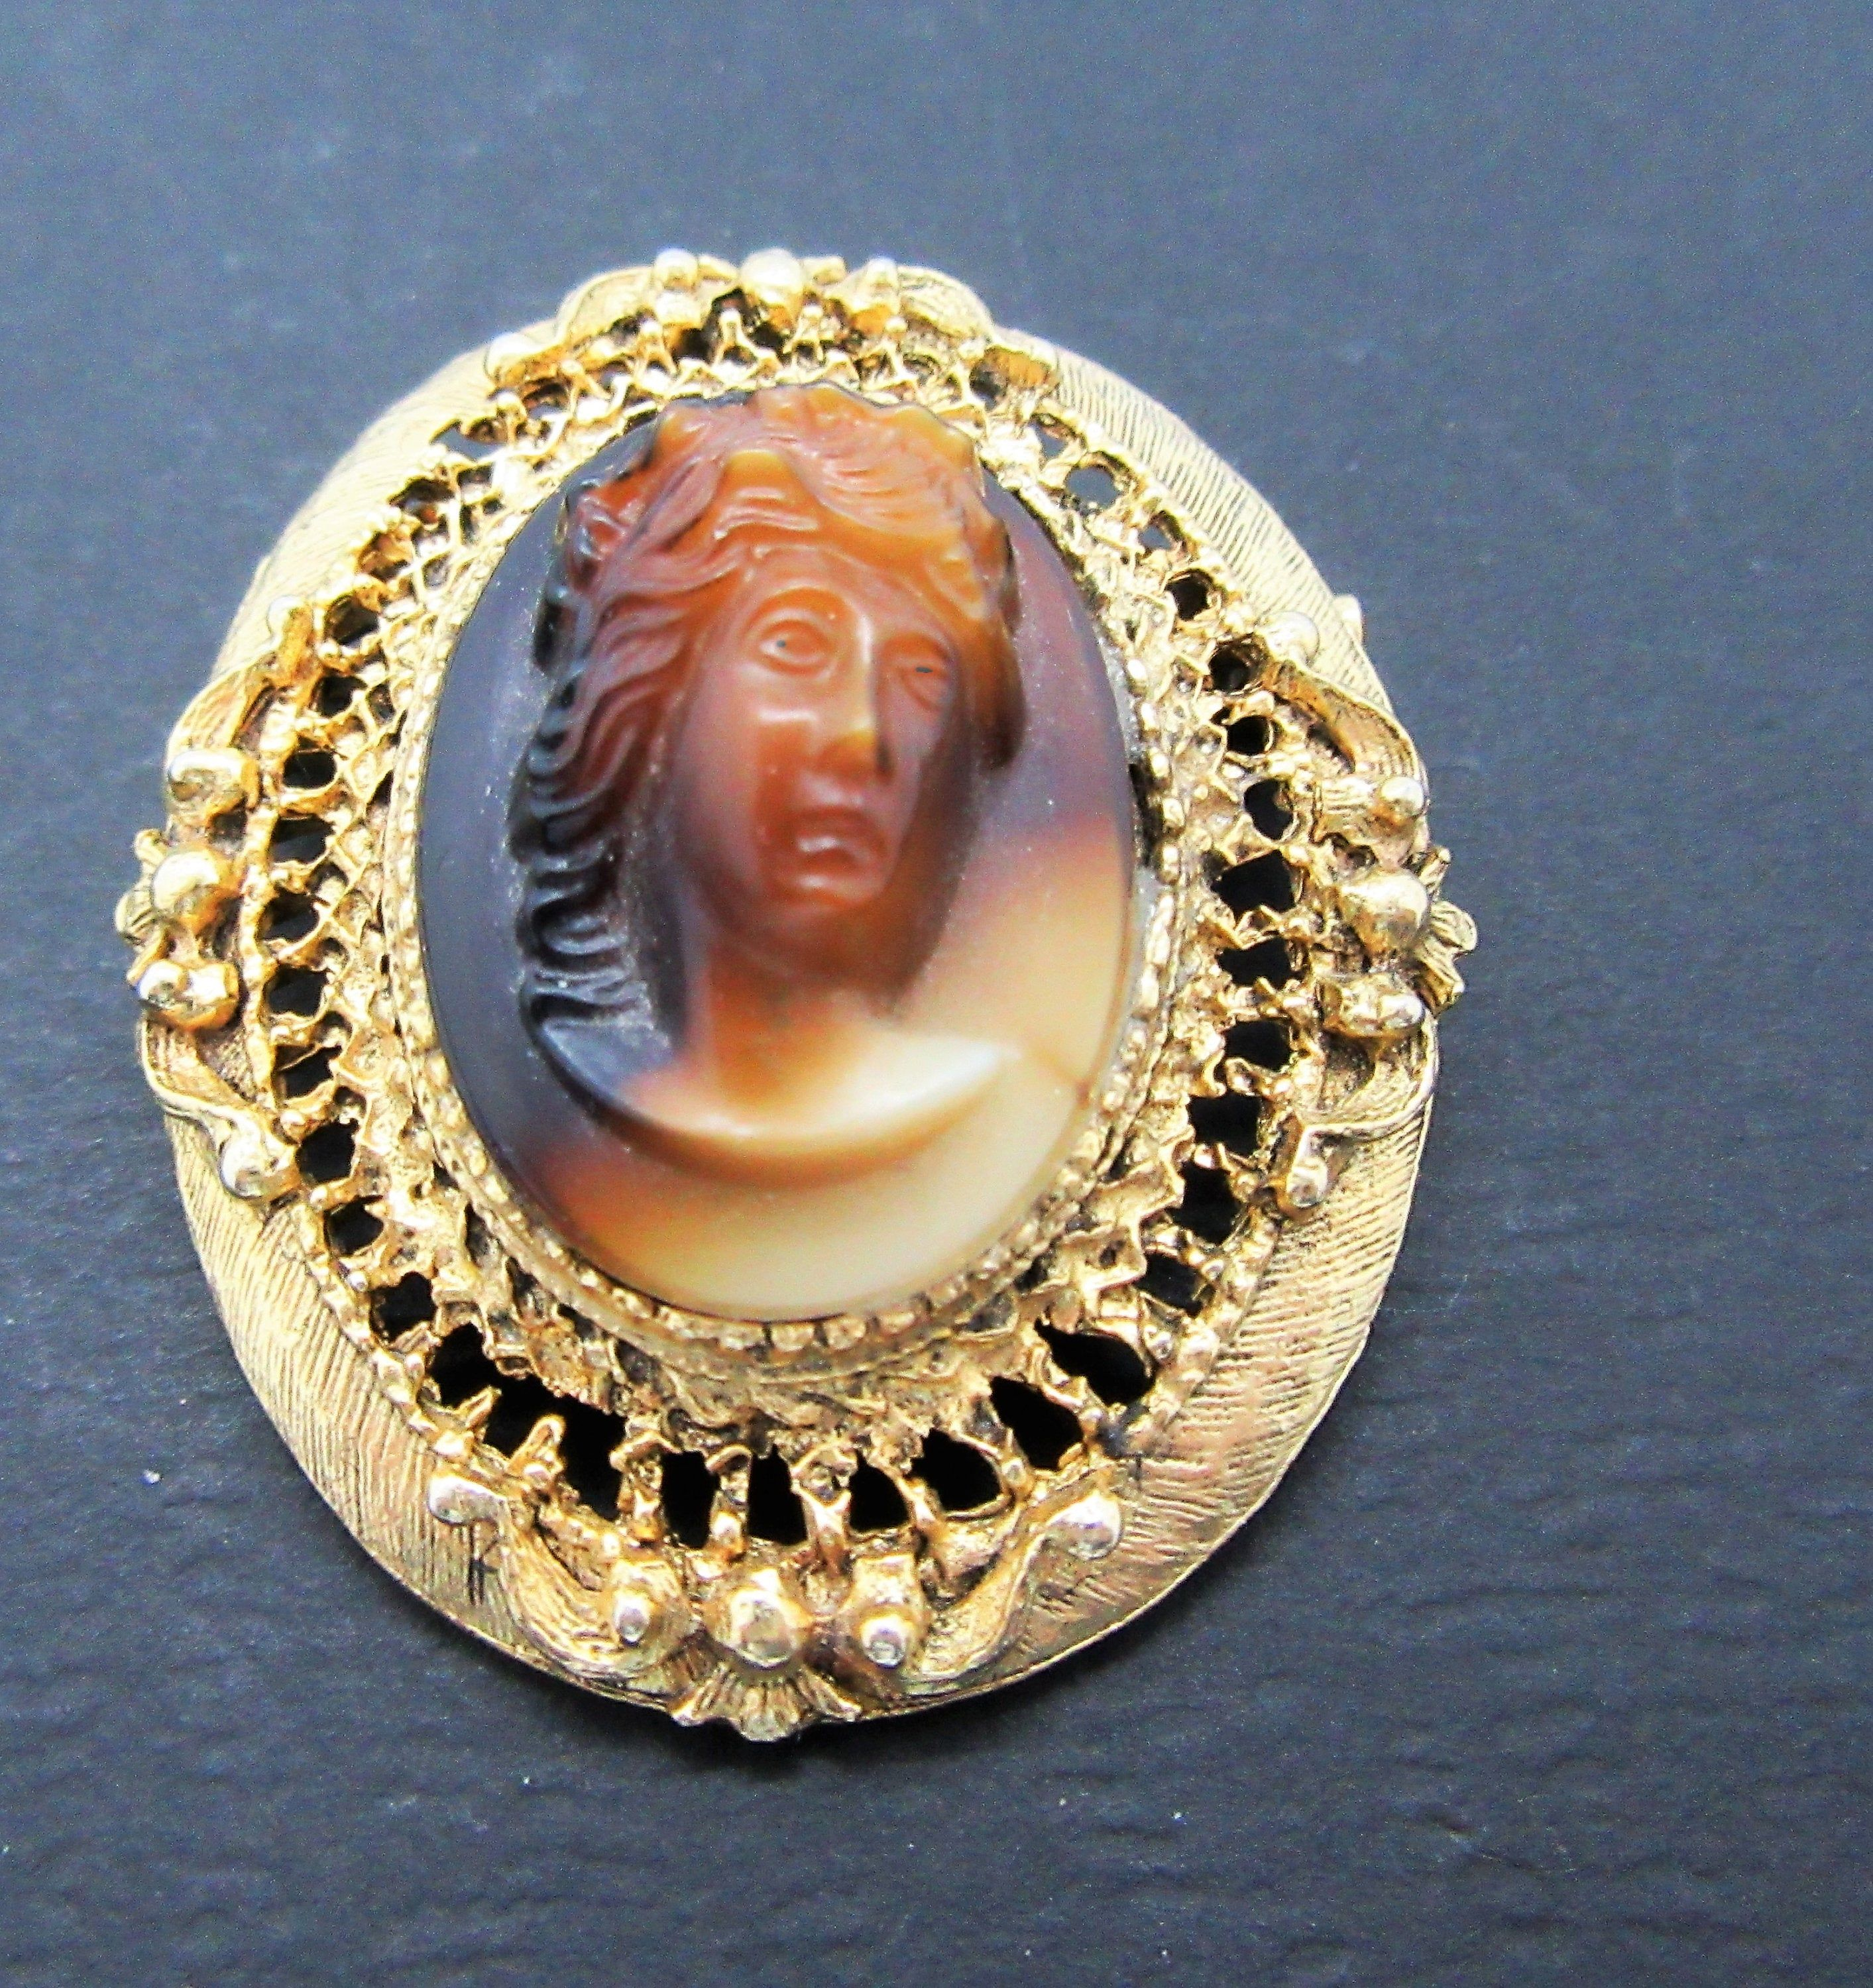 Vintage Victorian Revival Cameo Glass Pin Brooch Unsigned Designer Jewelry